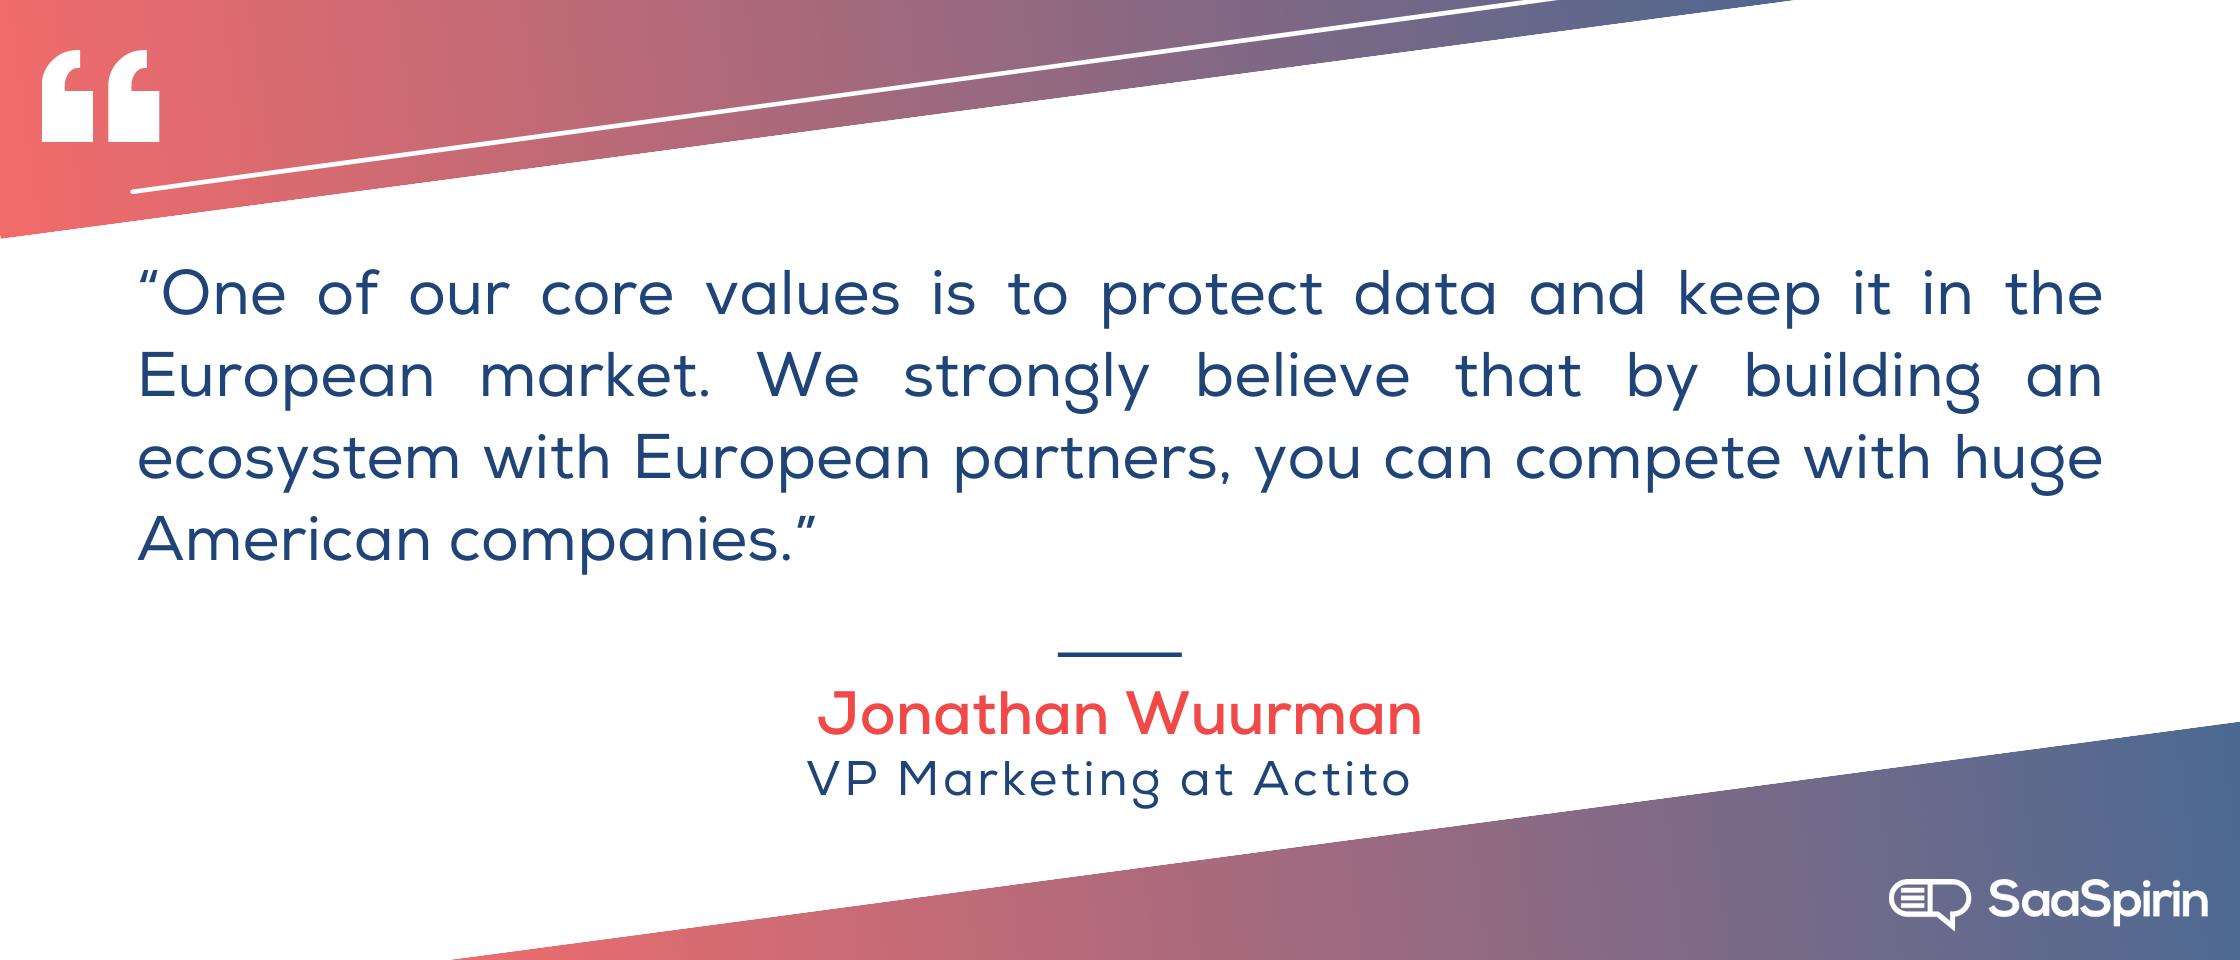 One-of-our-core-values-is-to-protect-data-and-keep-it-in-the-European-market-We-strongly-believe-that-by-building-an-ecosystem-with-European-partners-you-can-compete-with-huge-American-companies.png